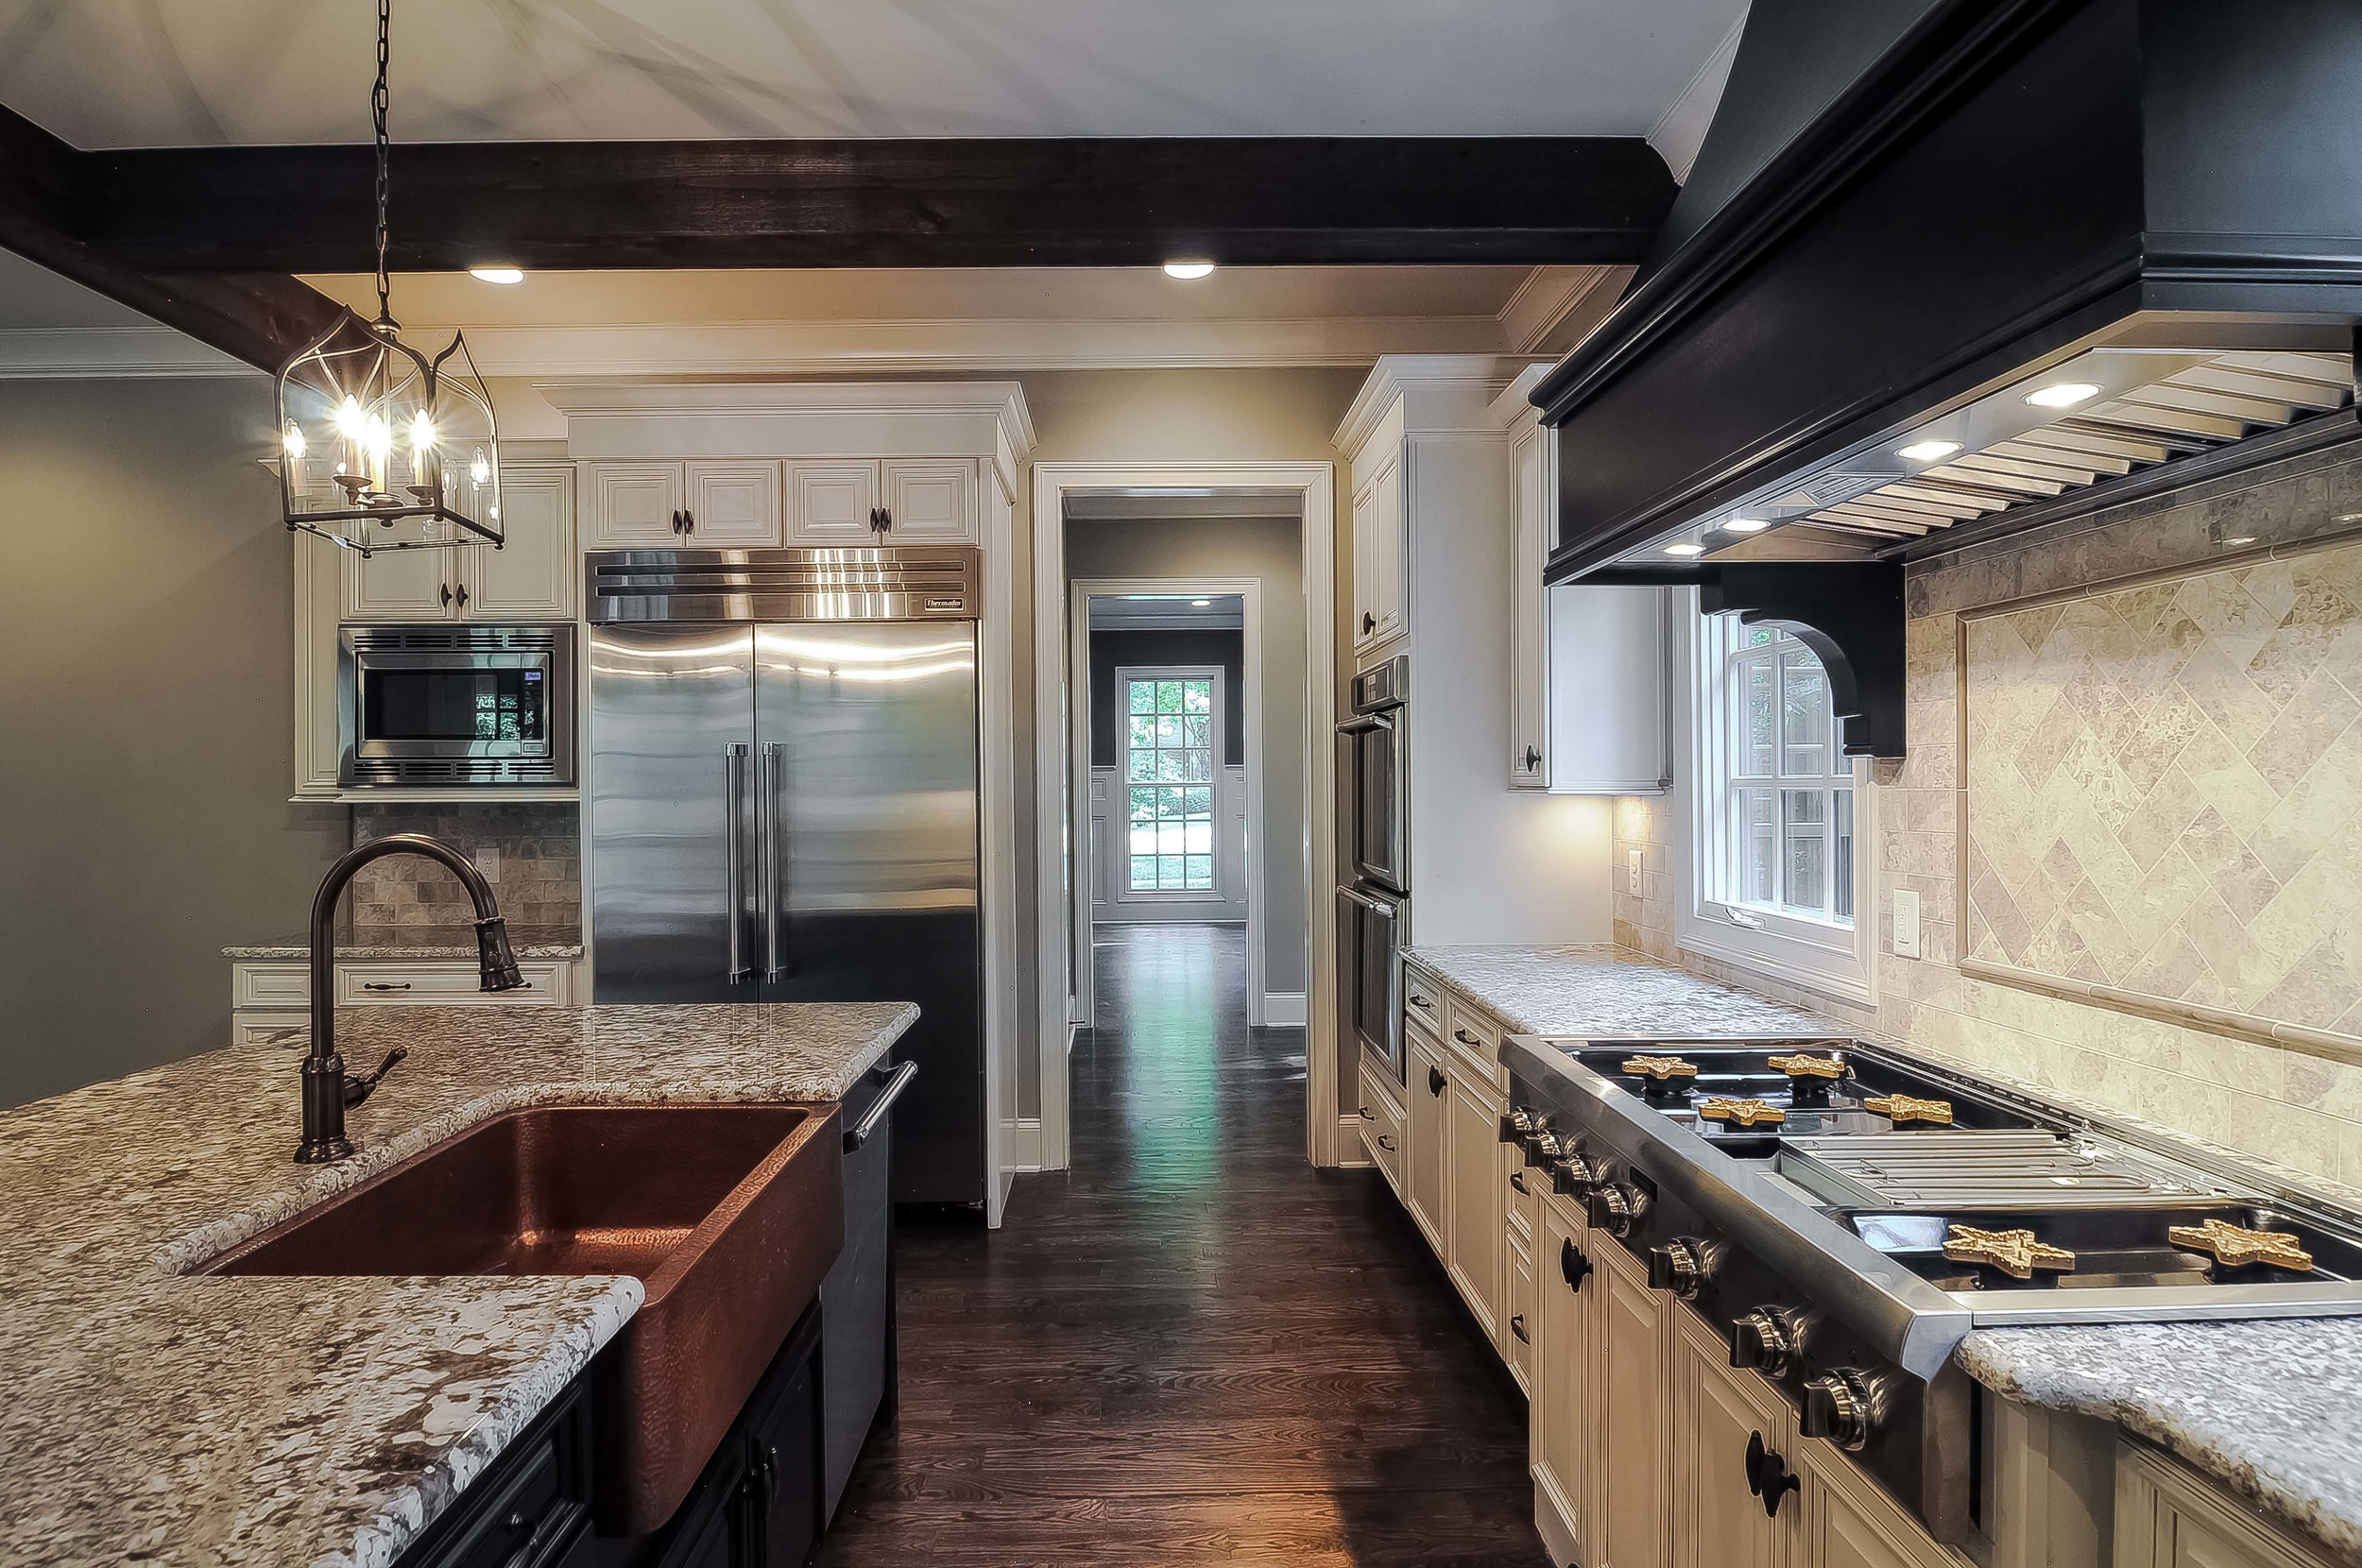 House-Plans-Online-Selections-Nashville-Peggy-Newman-Finishes-Kitchen-Copper-Farm House-Open Floor.jpg